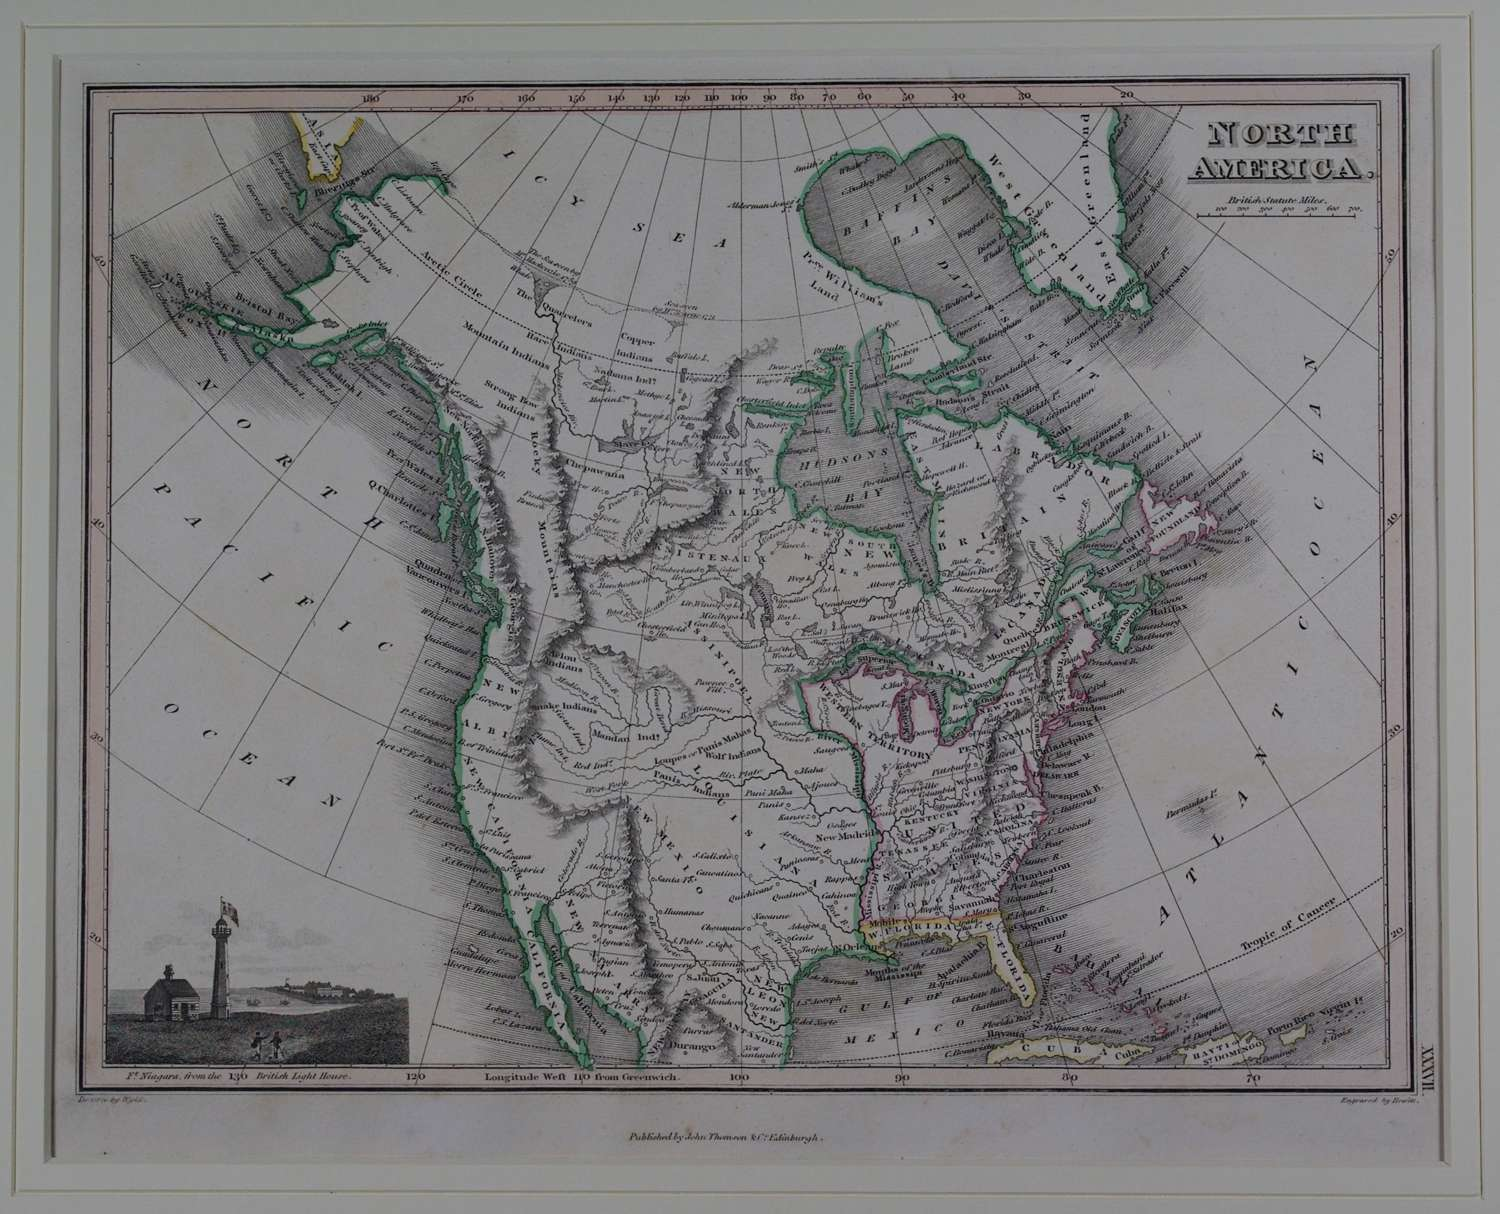 North America by J Wyld and NR Hewitt